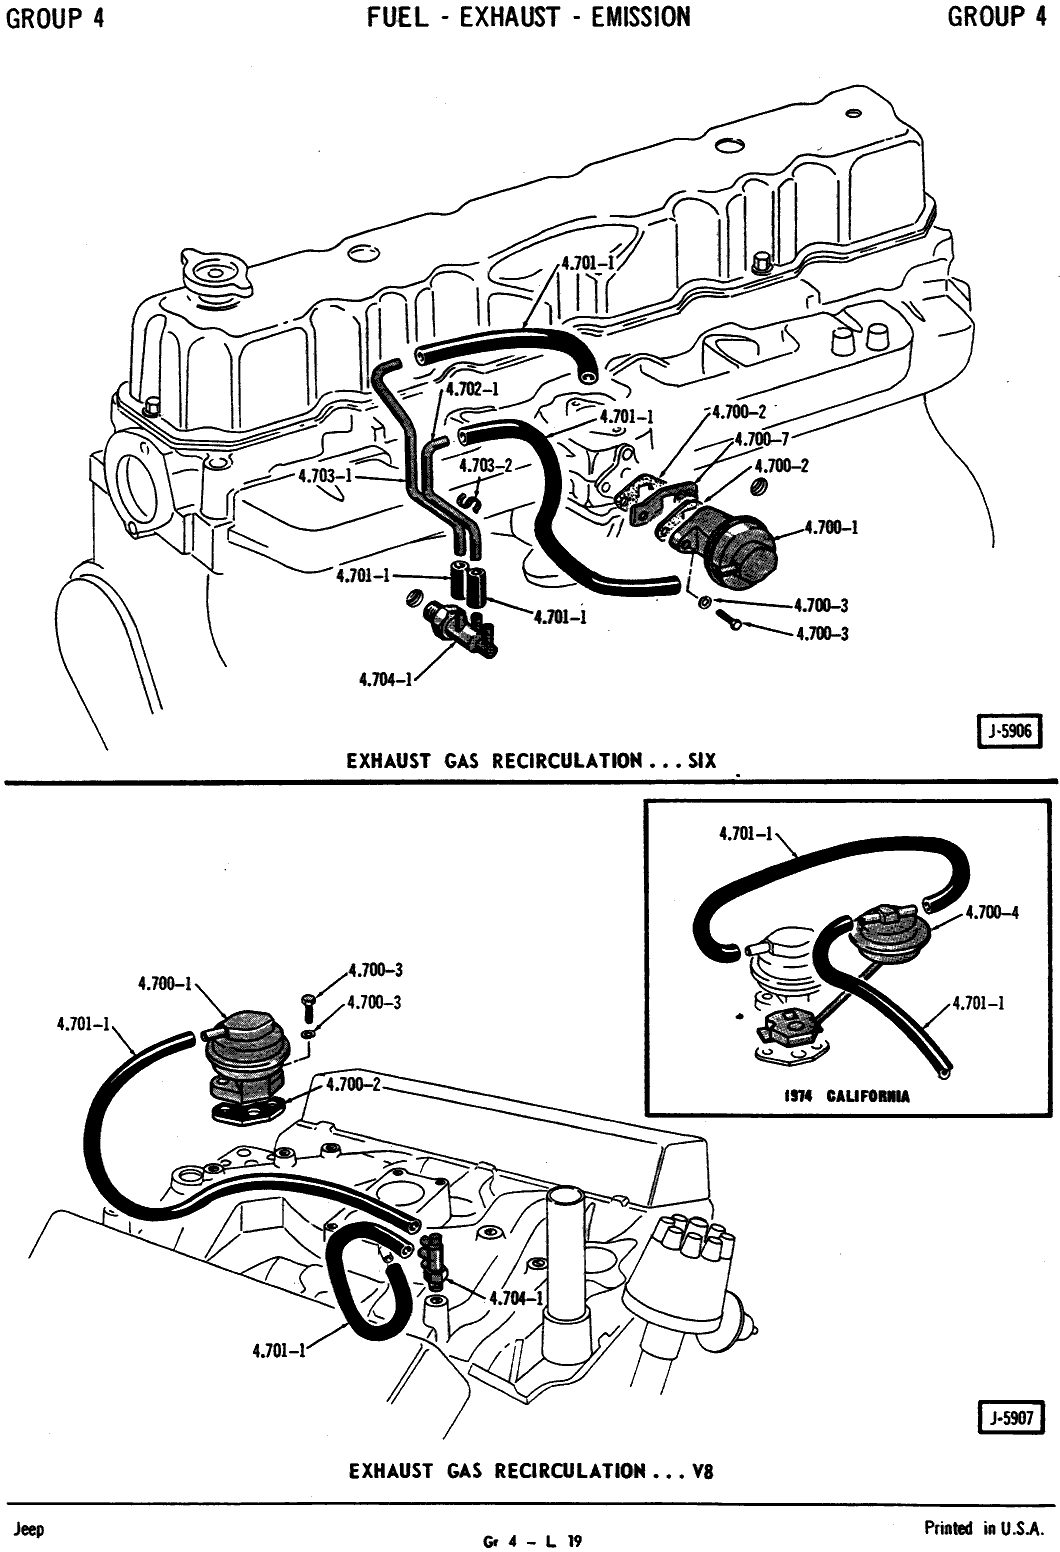 Jeep Cj7 I258 Engine Wiring